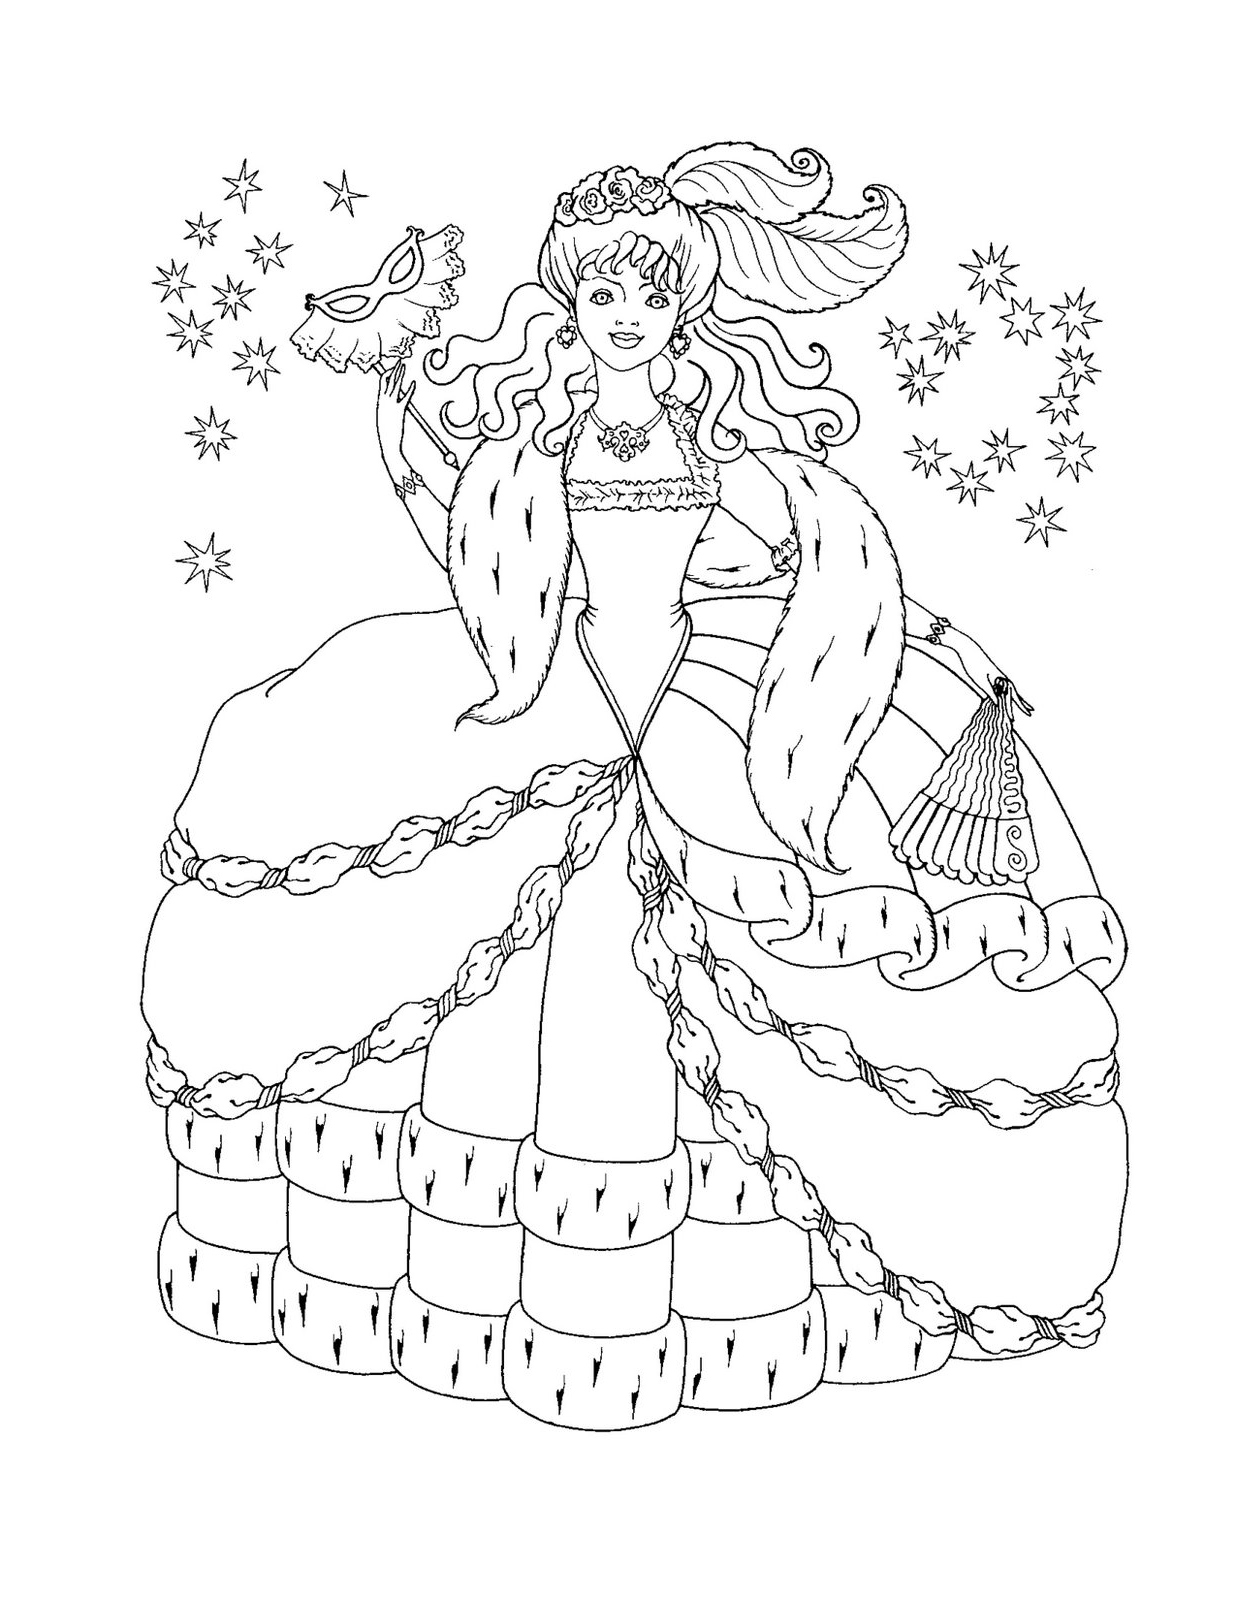 childrens disney coloring pages - photo#24